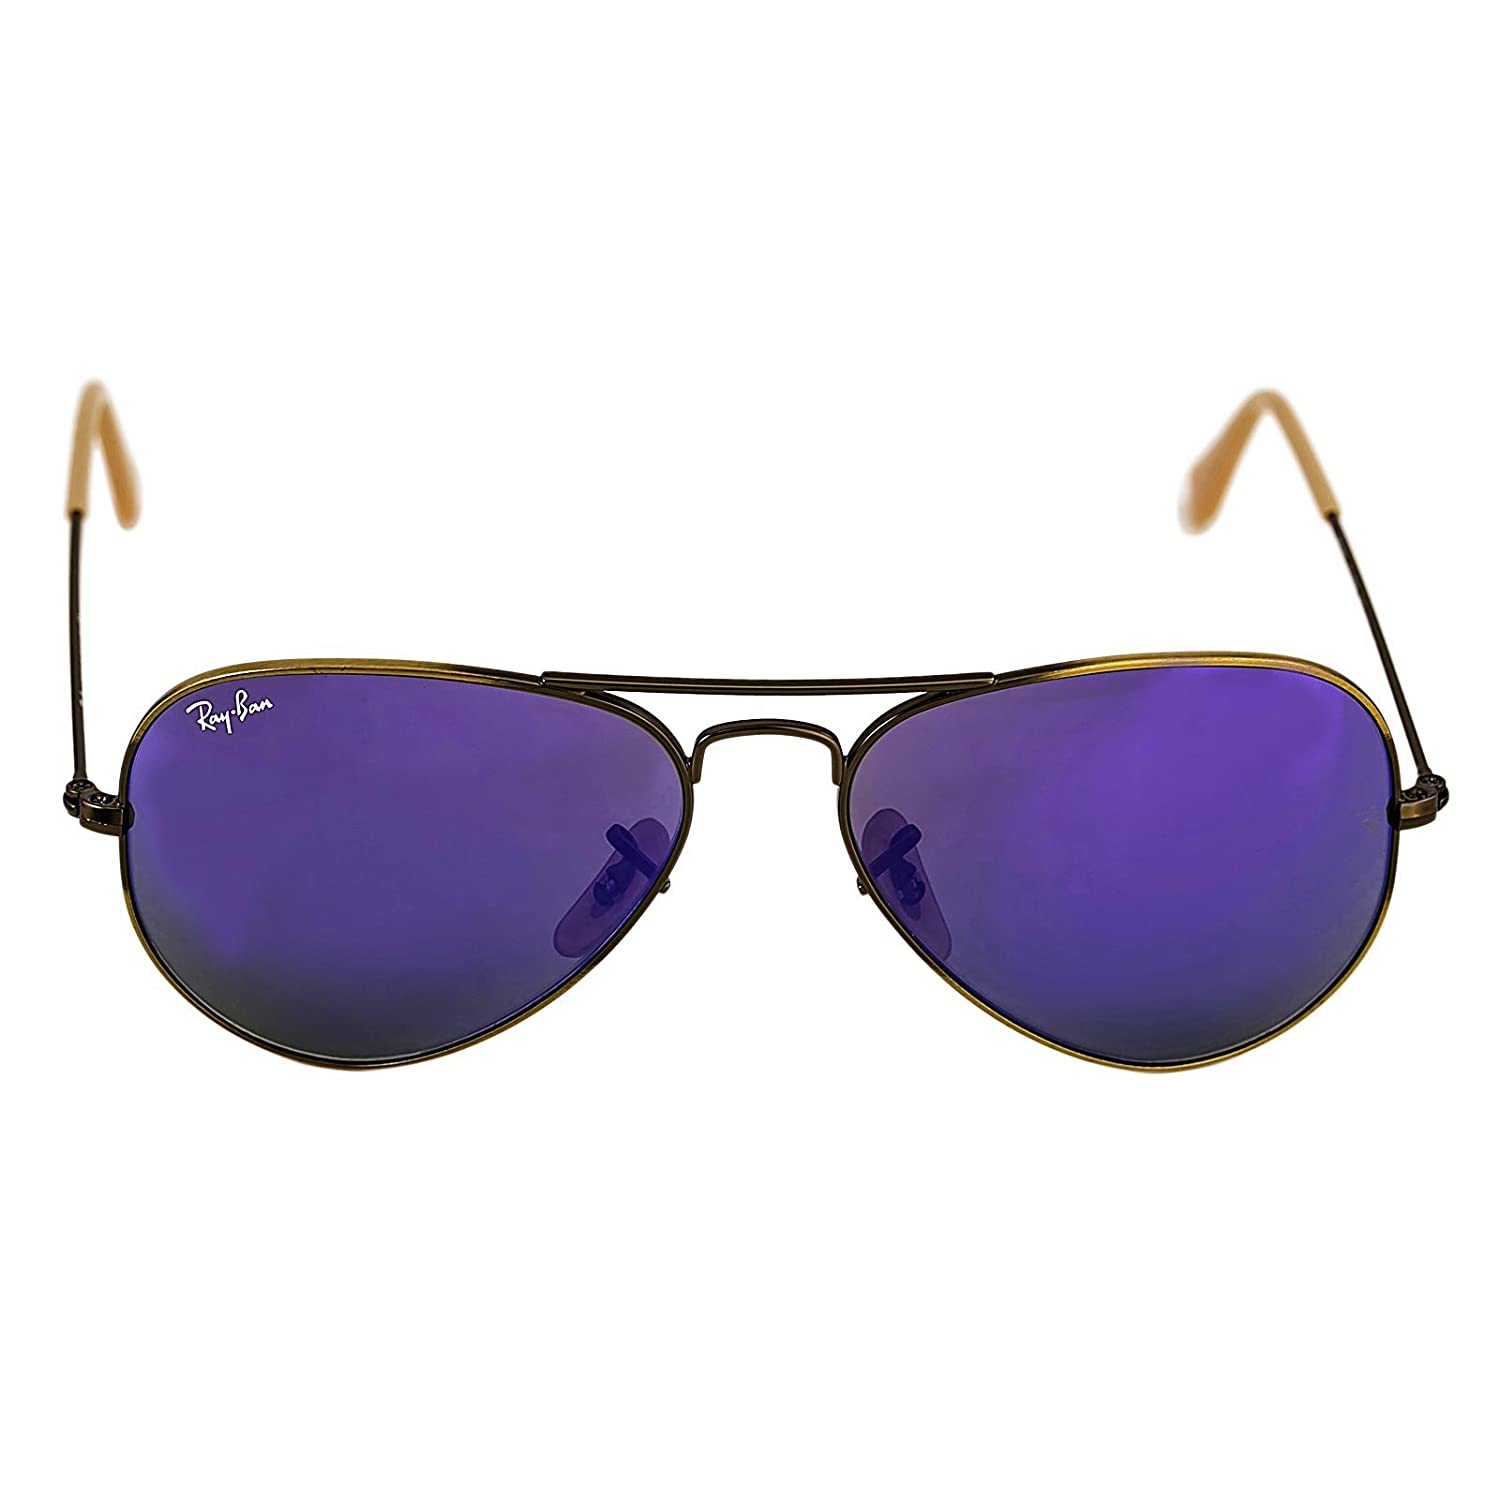 580d1616d4af Amazon.com  Ray-Ban RB3025 Aviator Sunglasses Brushed Bronze w Violet  Mirror (167 1M) RB 3025 1671M 55mm  Shoes